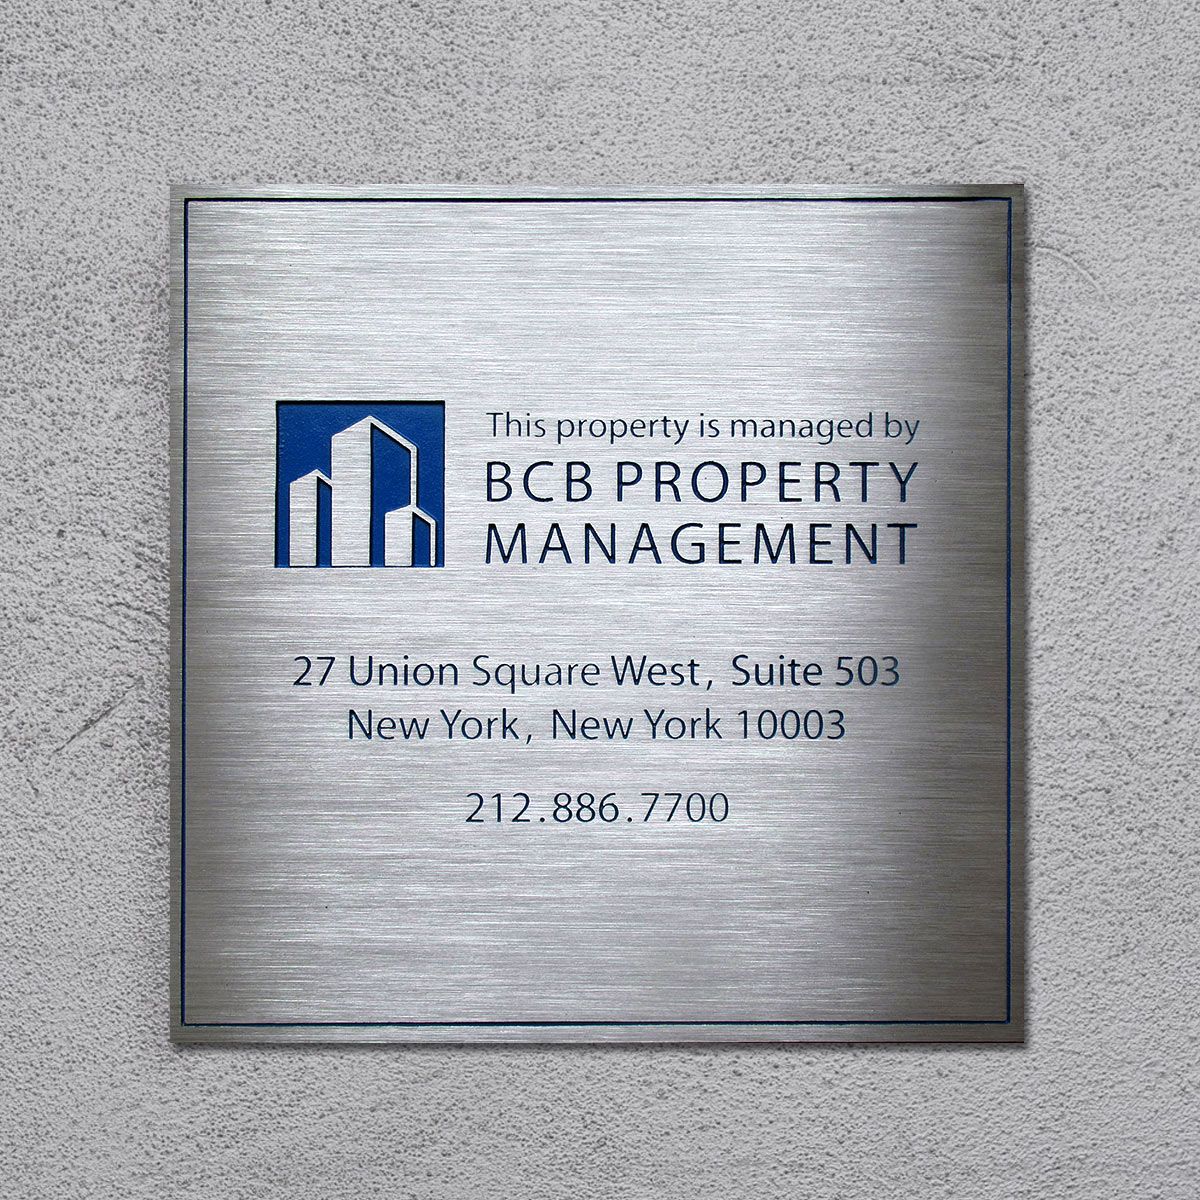 masterwork-plaques-building-management-plaques-bcb-property-management-union-square-stainless-steel-wall-plaque.jpg